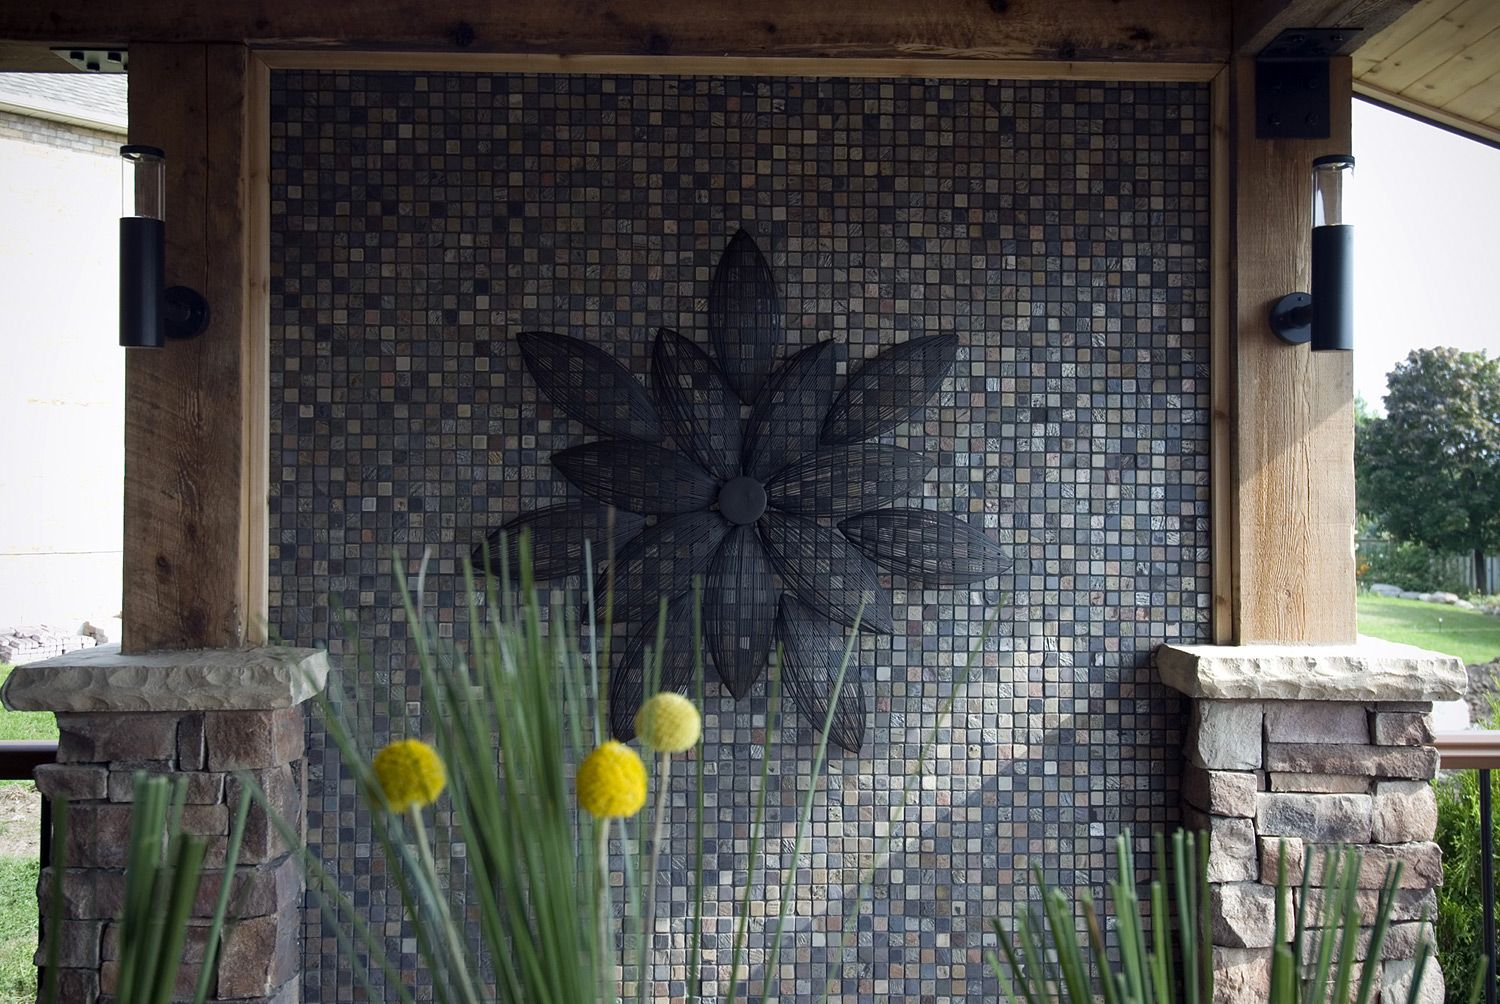 This solid privacy barrier includes a metal art feature for Metal privacy screens for decks